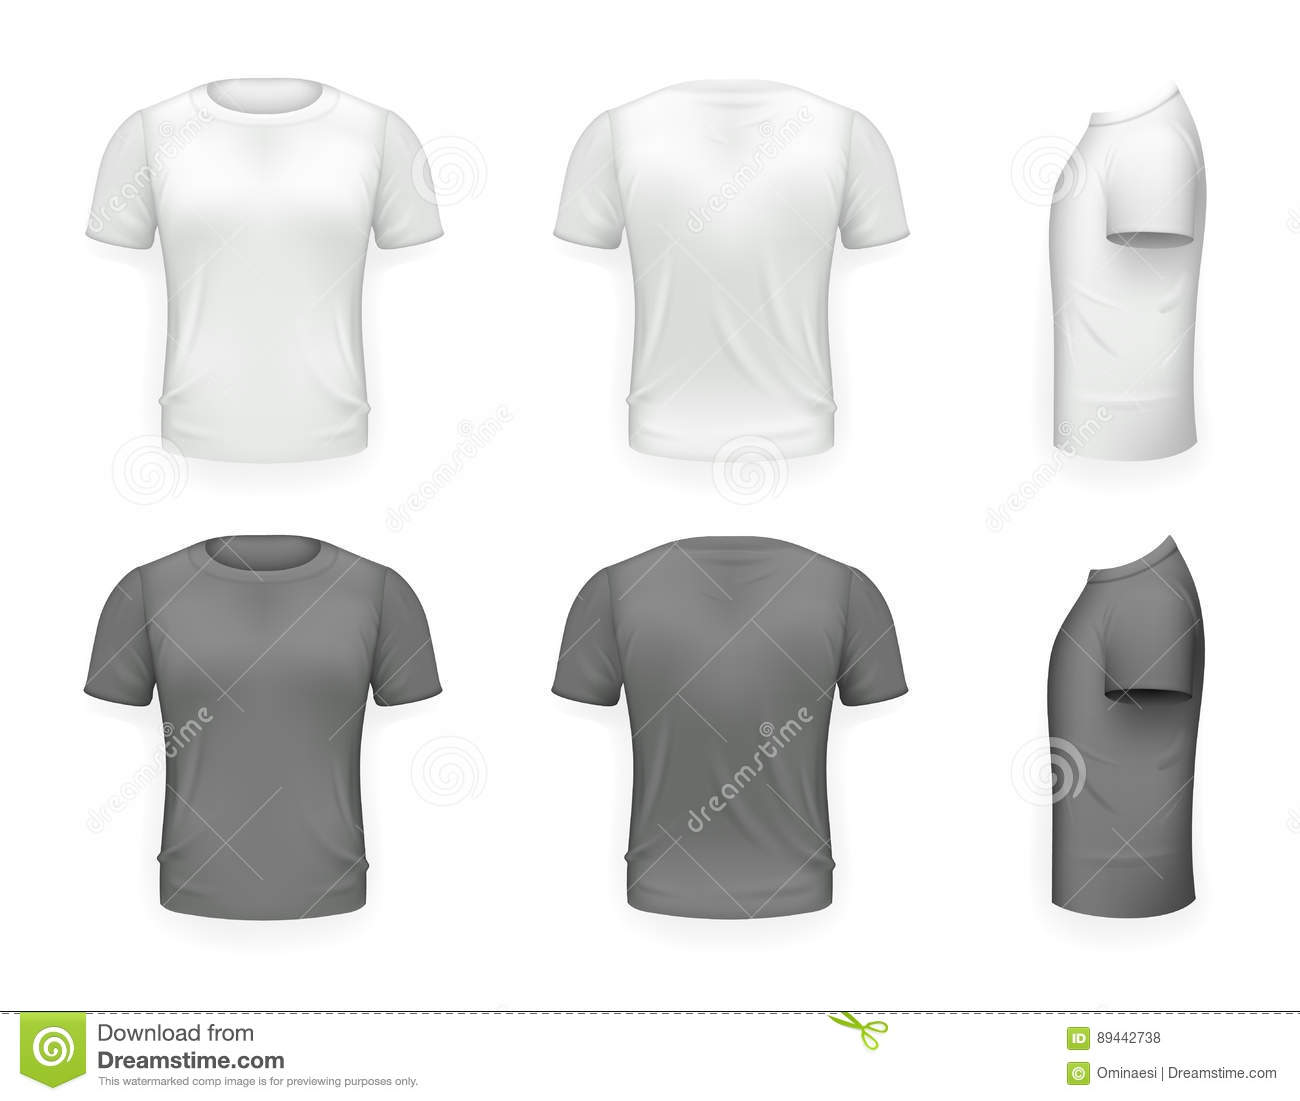 White t shirt front and back template - Black And White T Shirt Front Side Back View Template Realistic 3d Design Icon Transparent